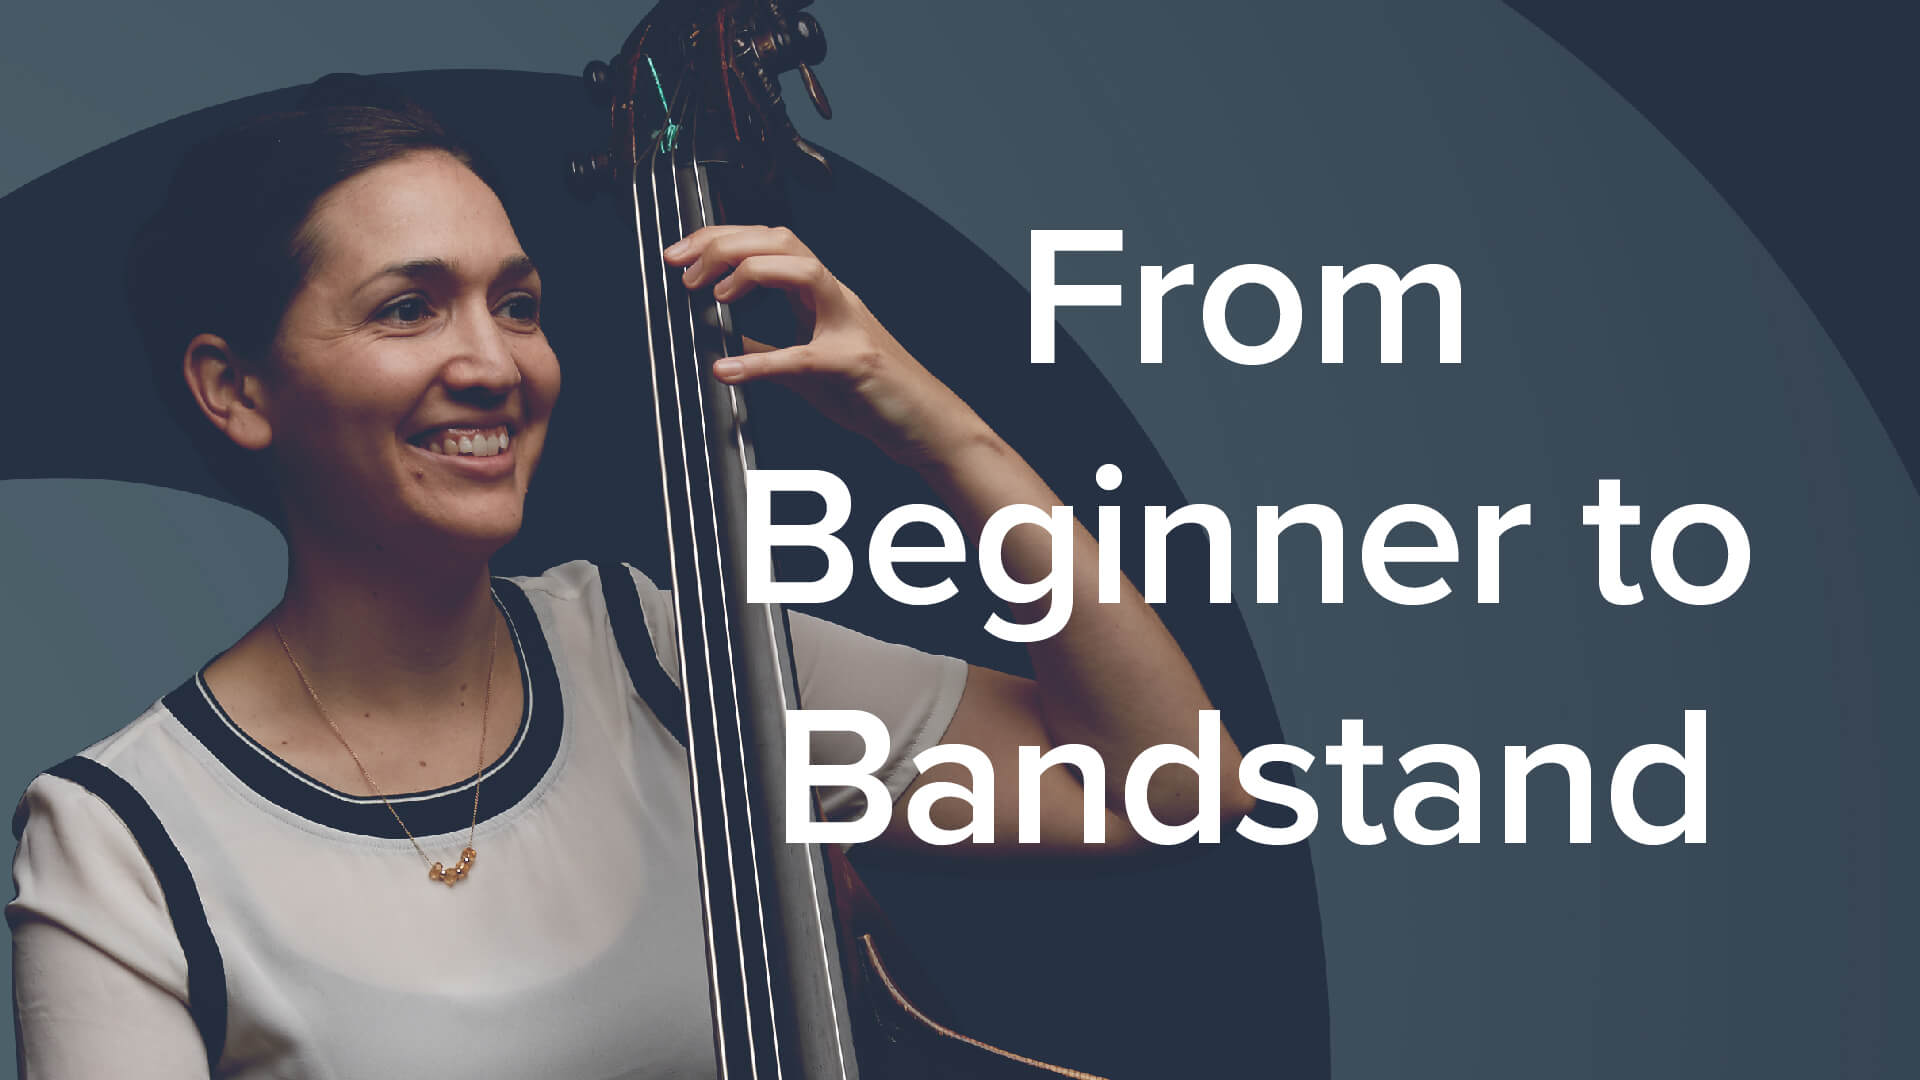 From Beginner to Bandstand